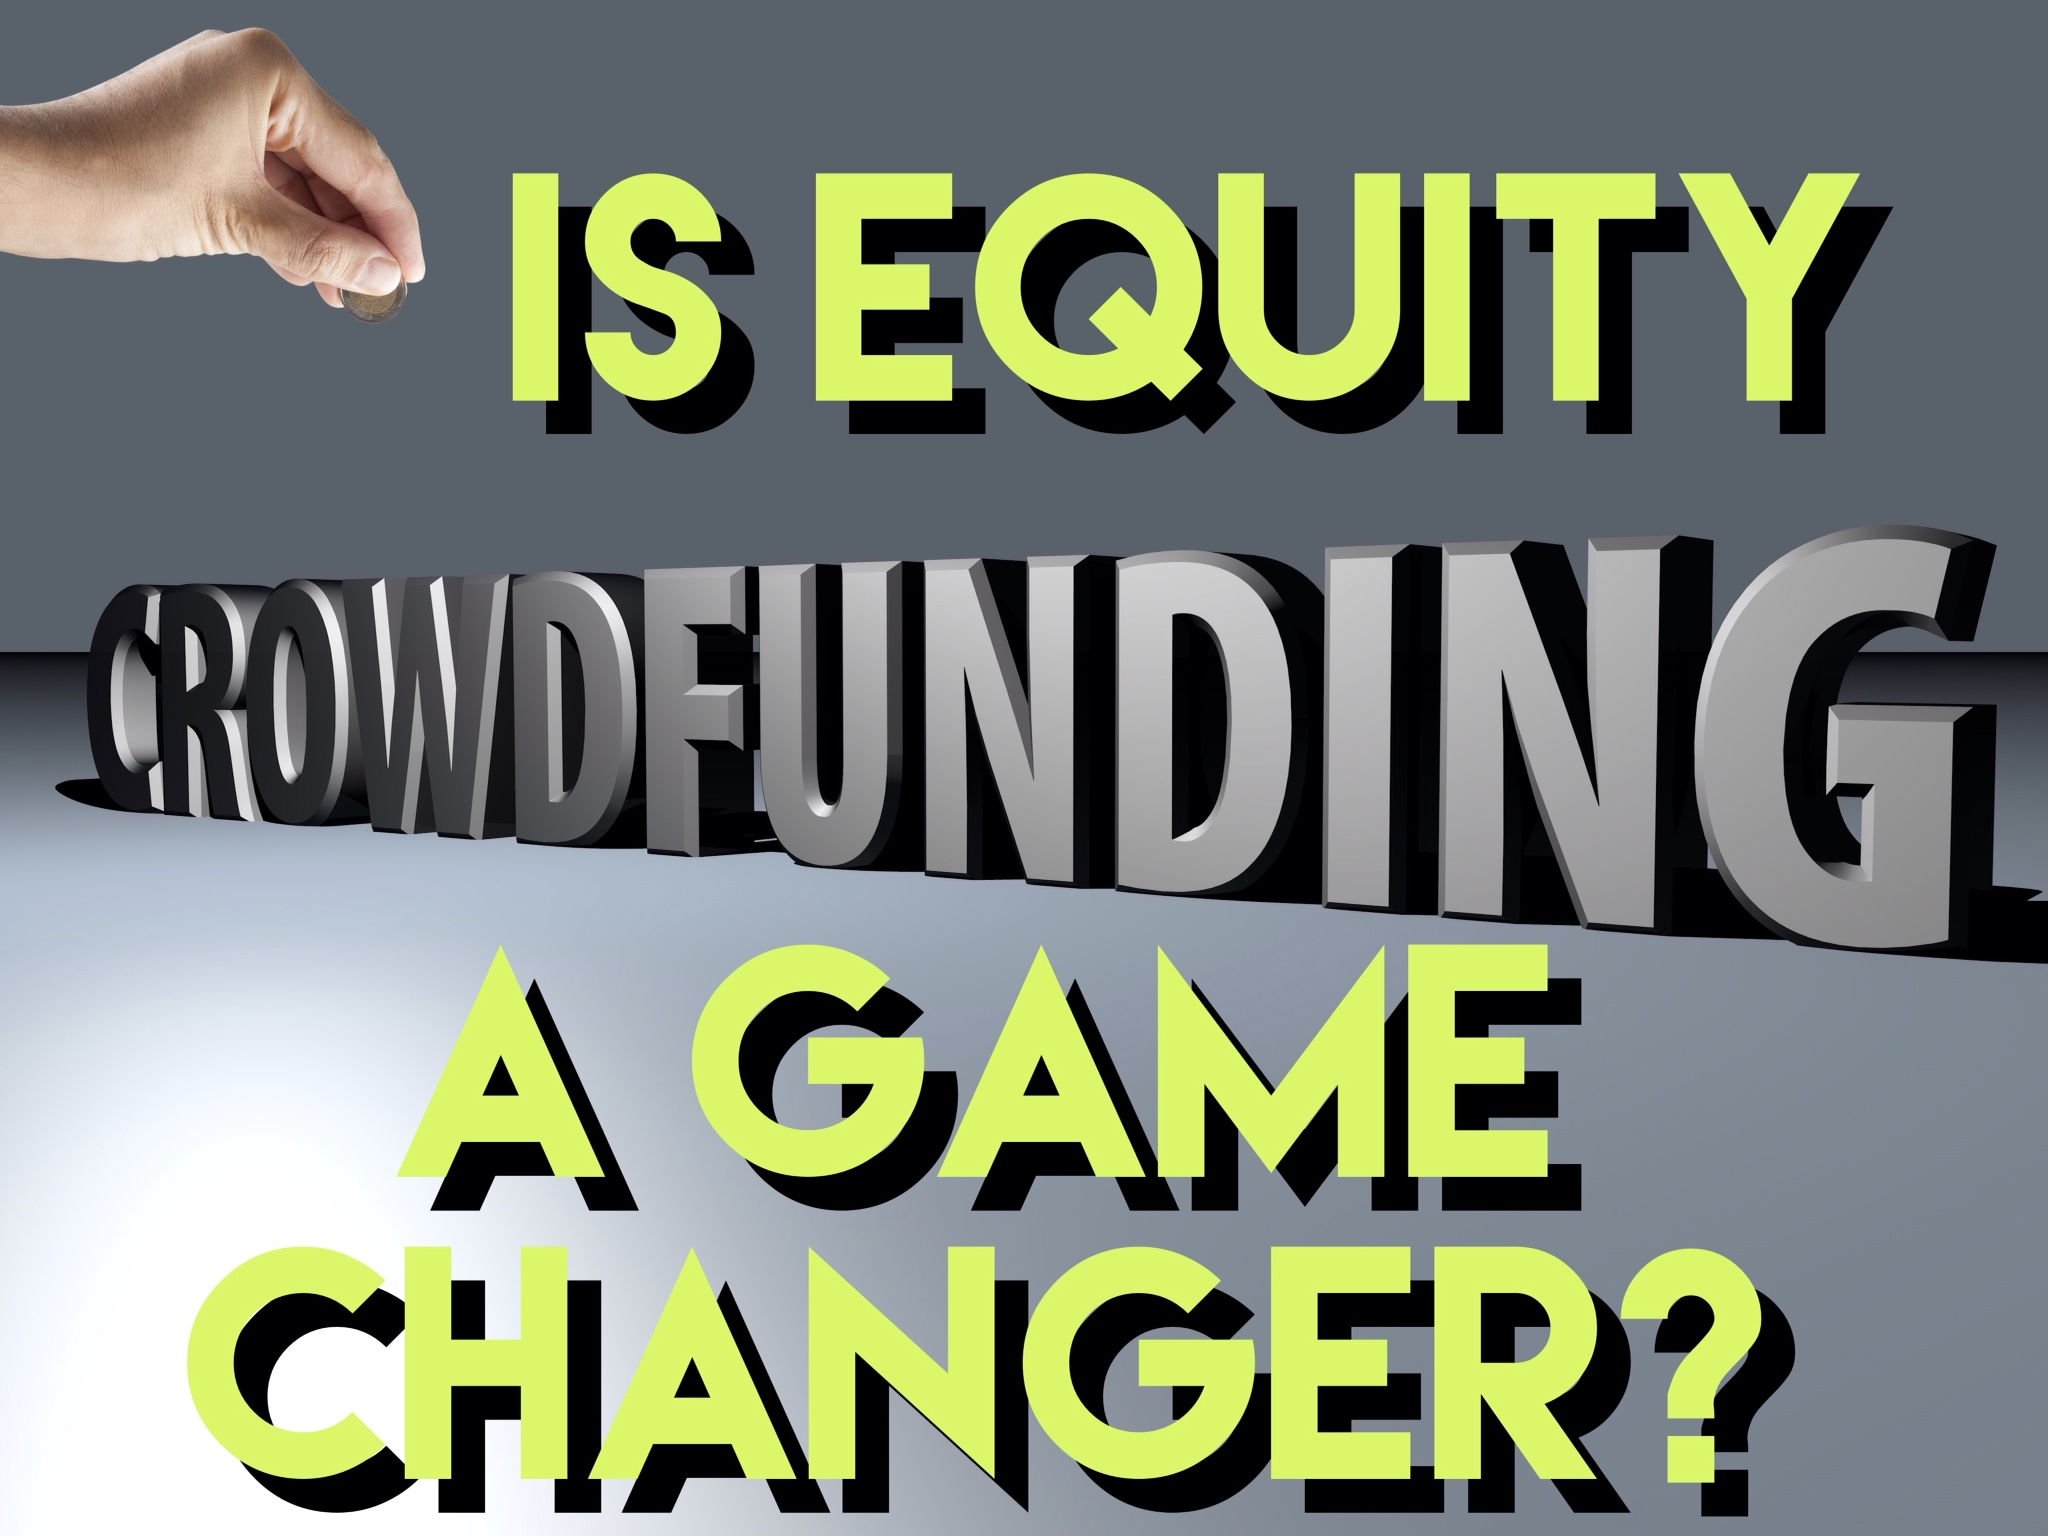 Is Equity Crowdfunding a Game Changer?